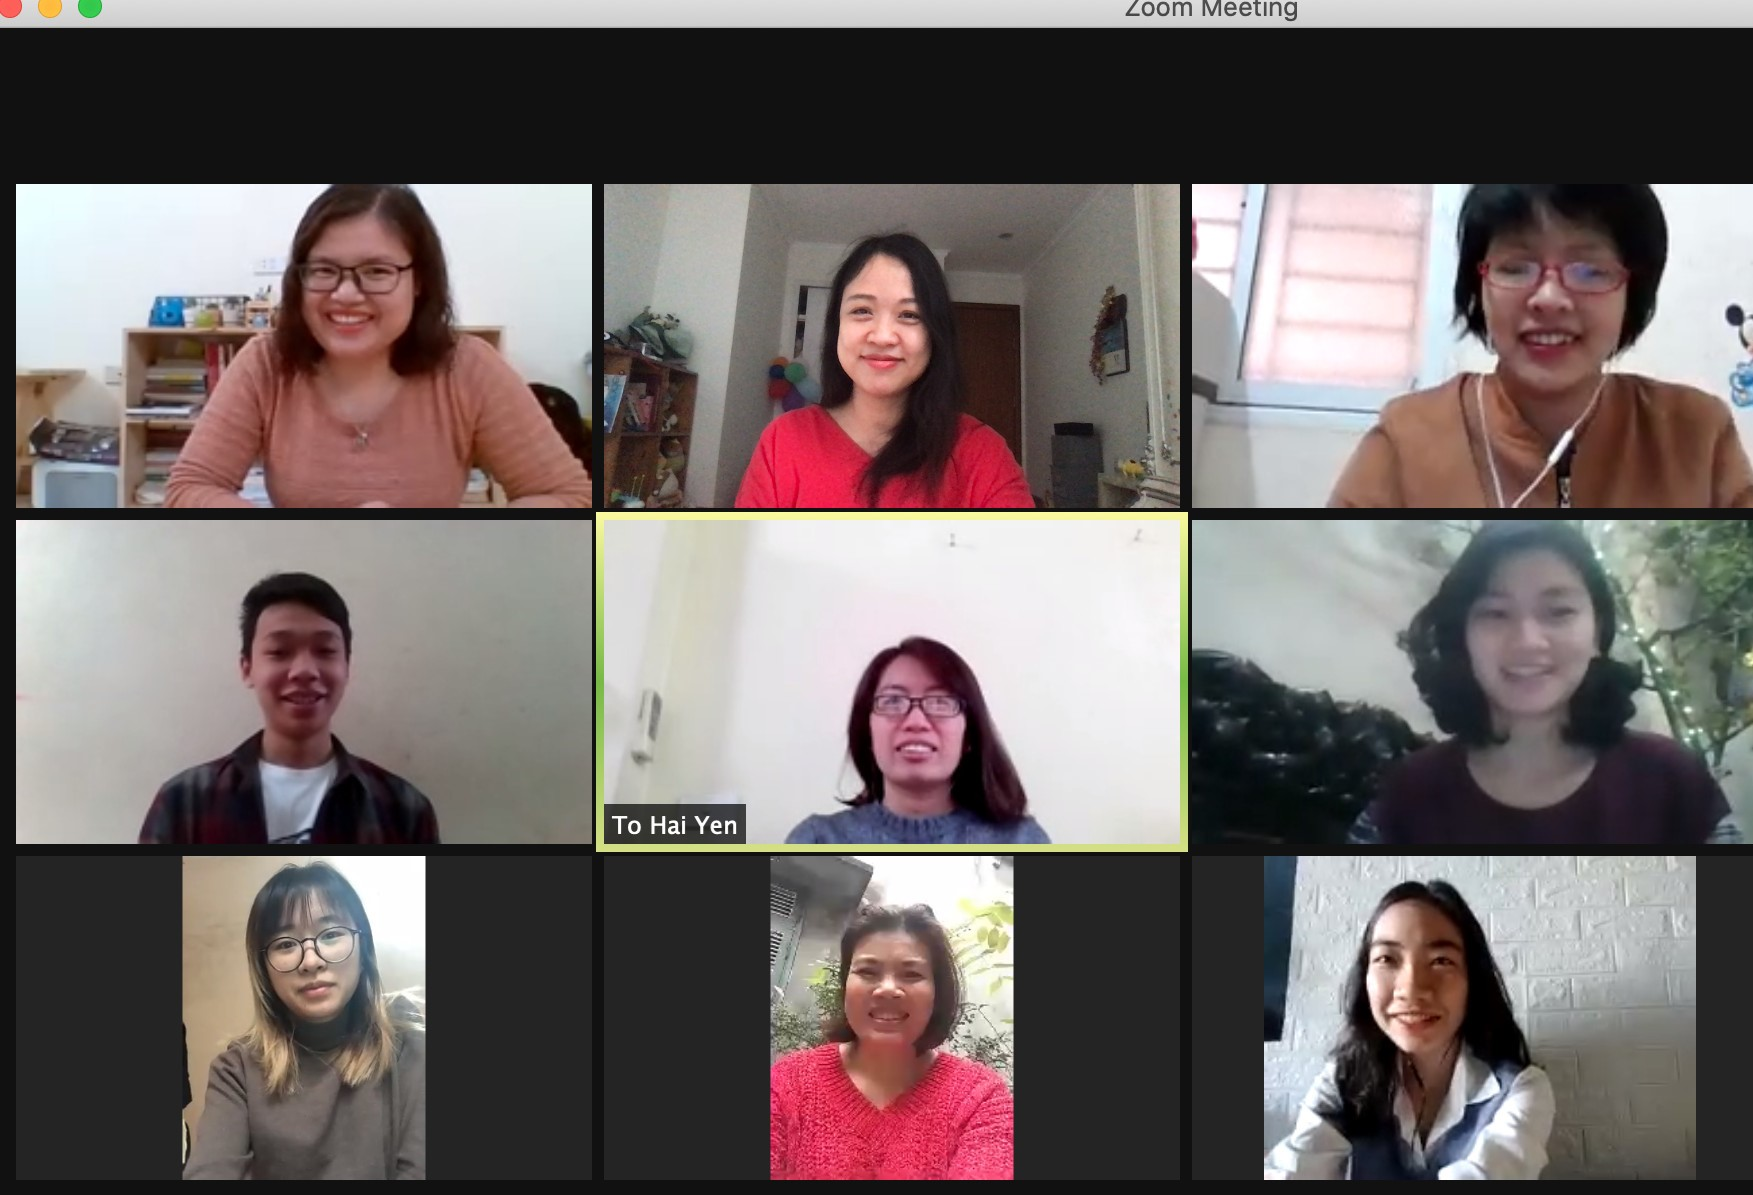 First meeting in the early year via Zoom